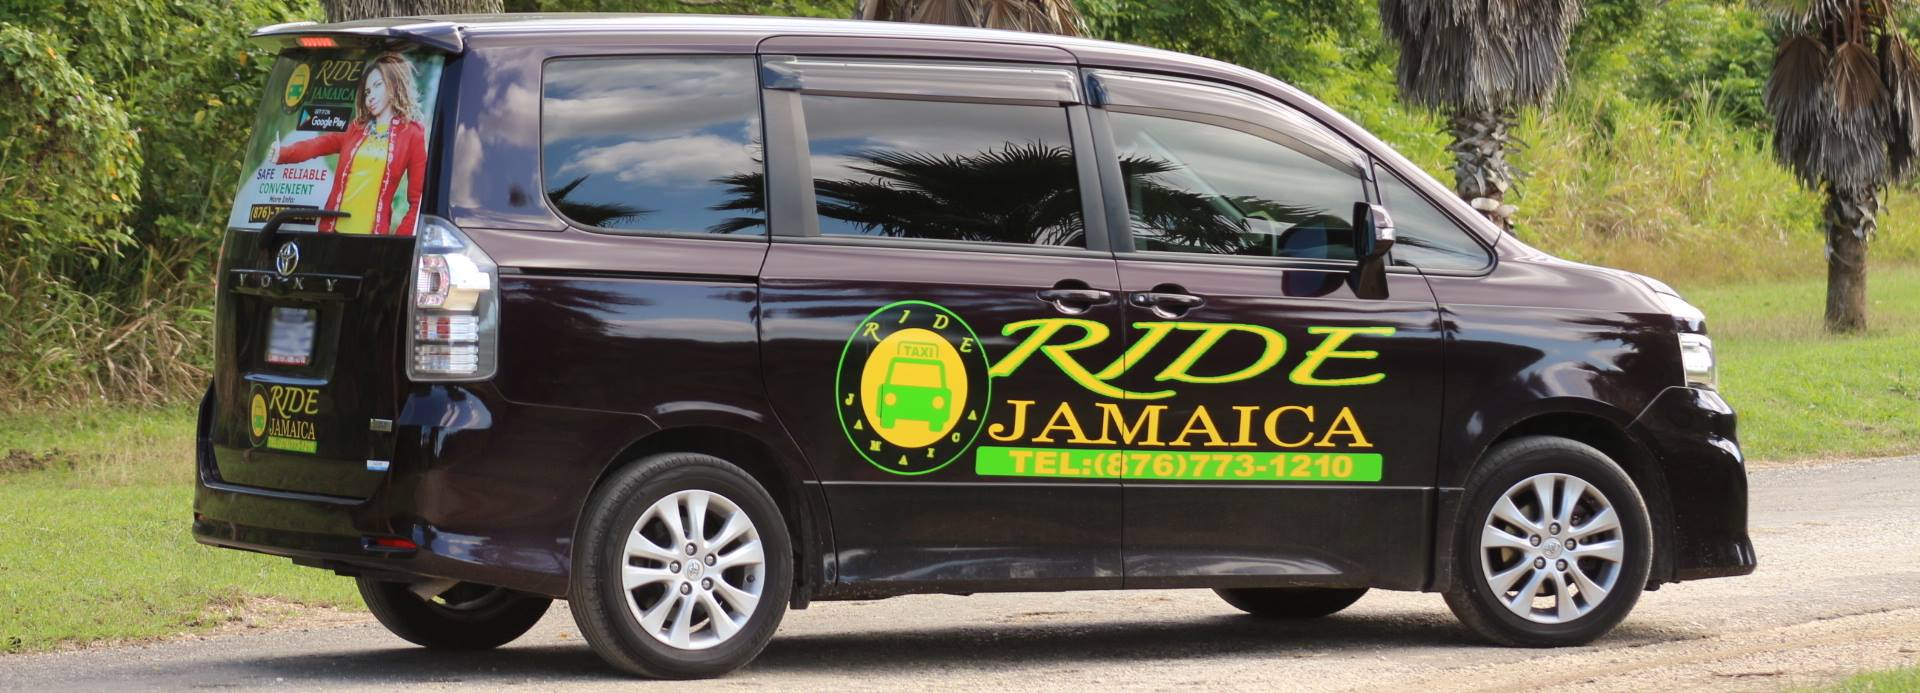 Ride Jamaica Airport Transfers from montego bay to negril